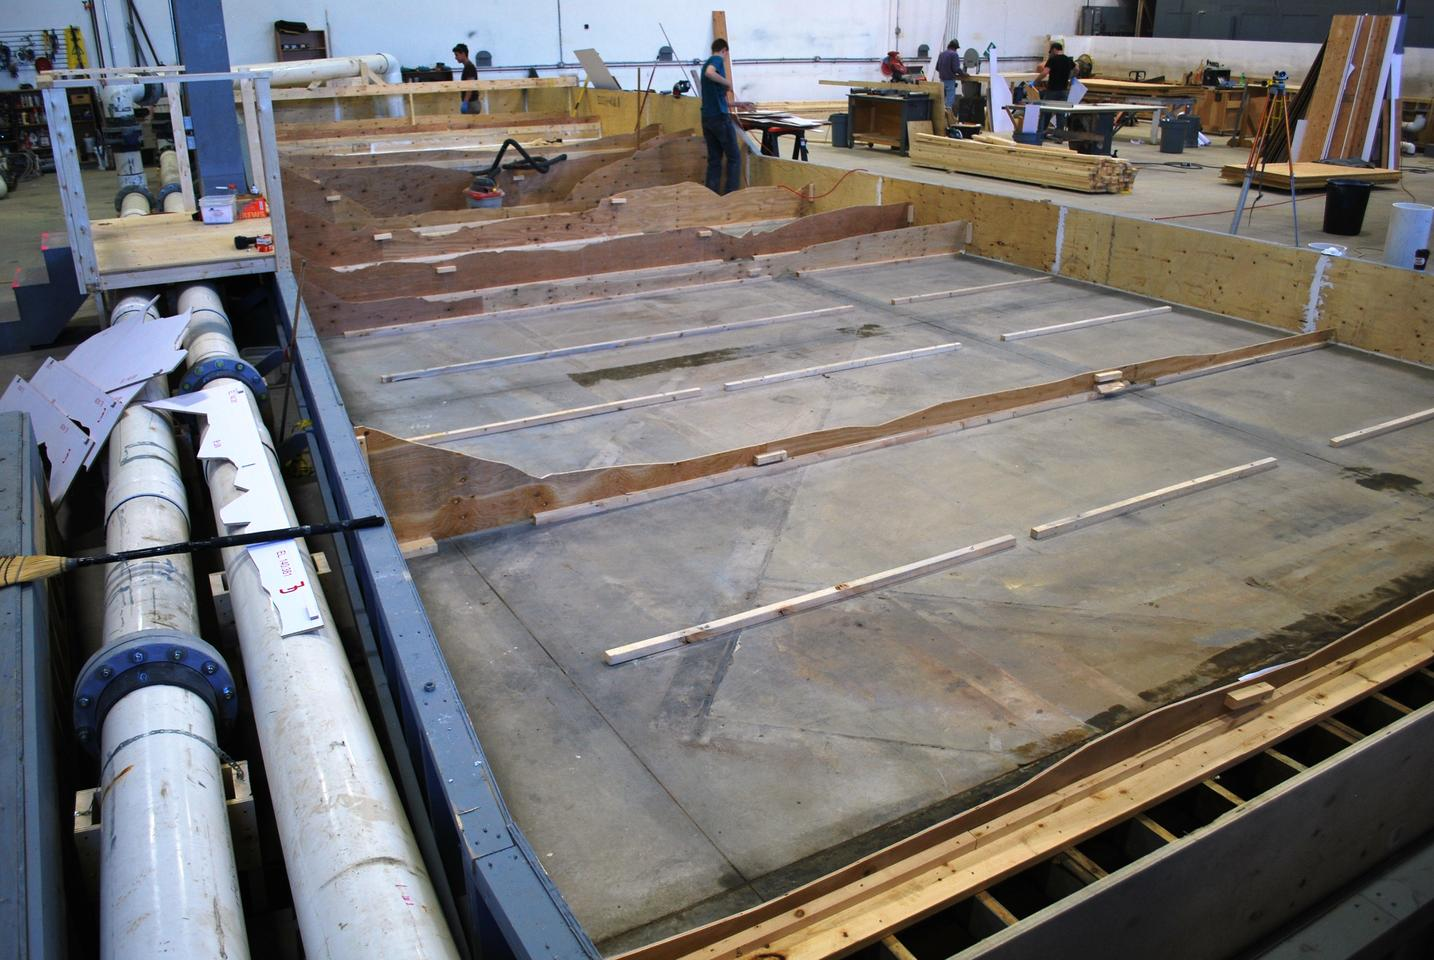 The foundation of the Nybrufossen Whitewater Park model – note the water return pipes at left (Photo: NHC)